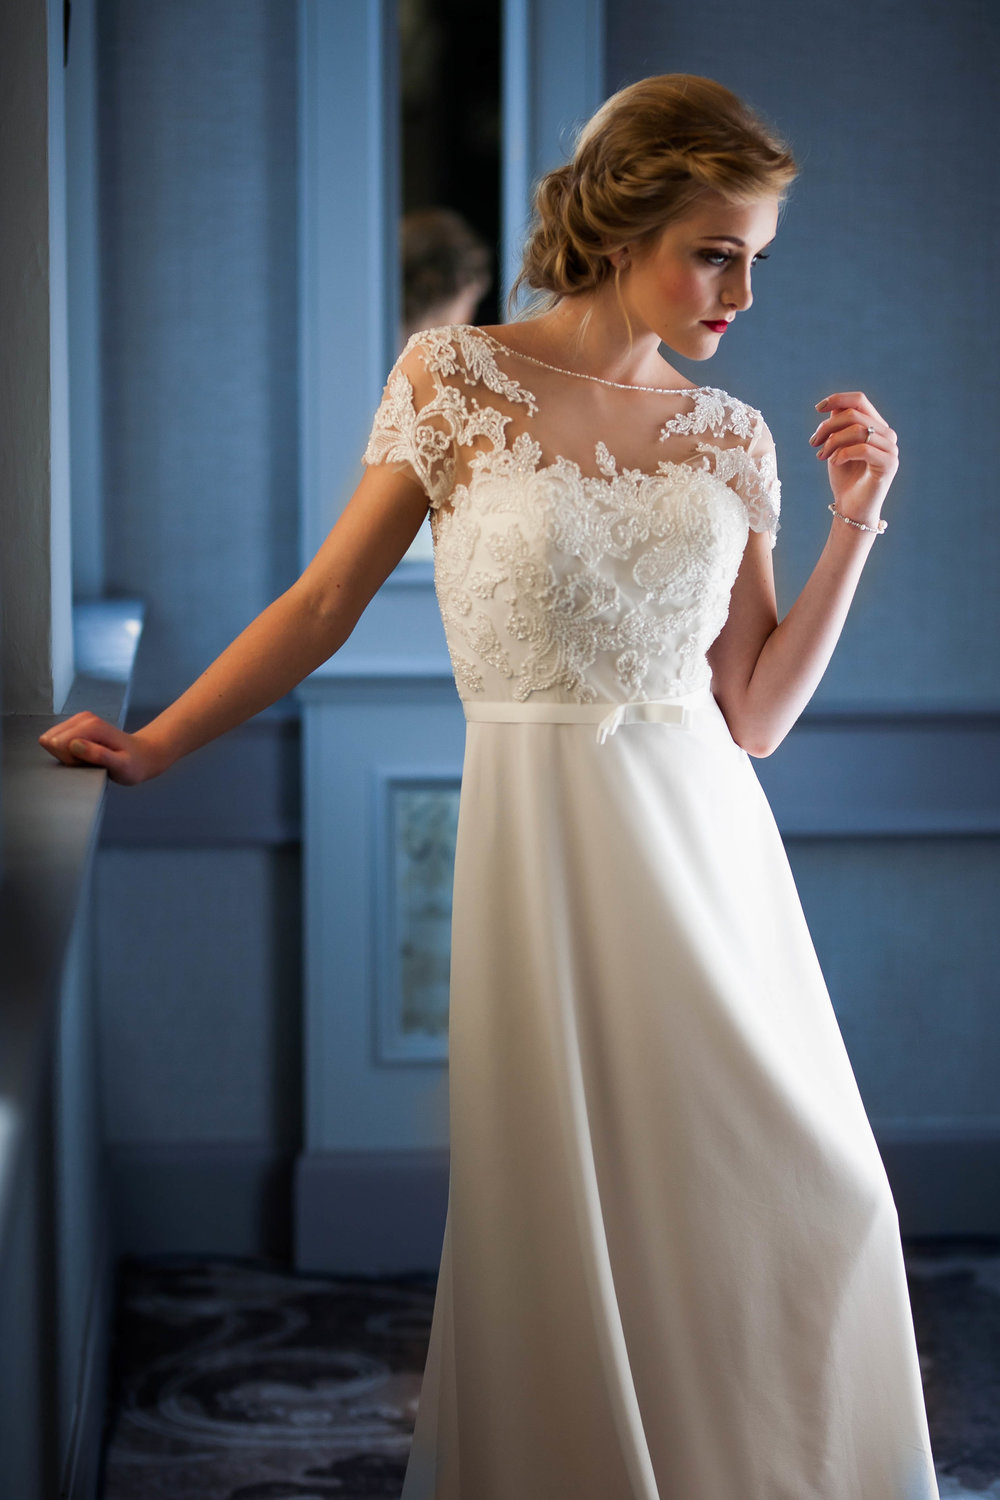 Exelent Glasgow Wedding Dress Ideas - All Wedding Dresses ...